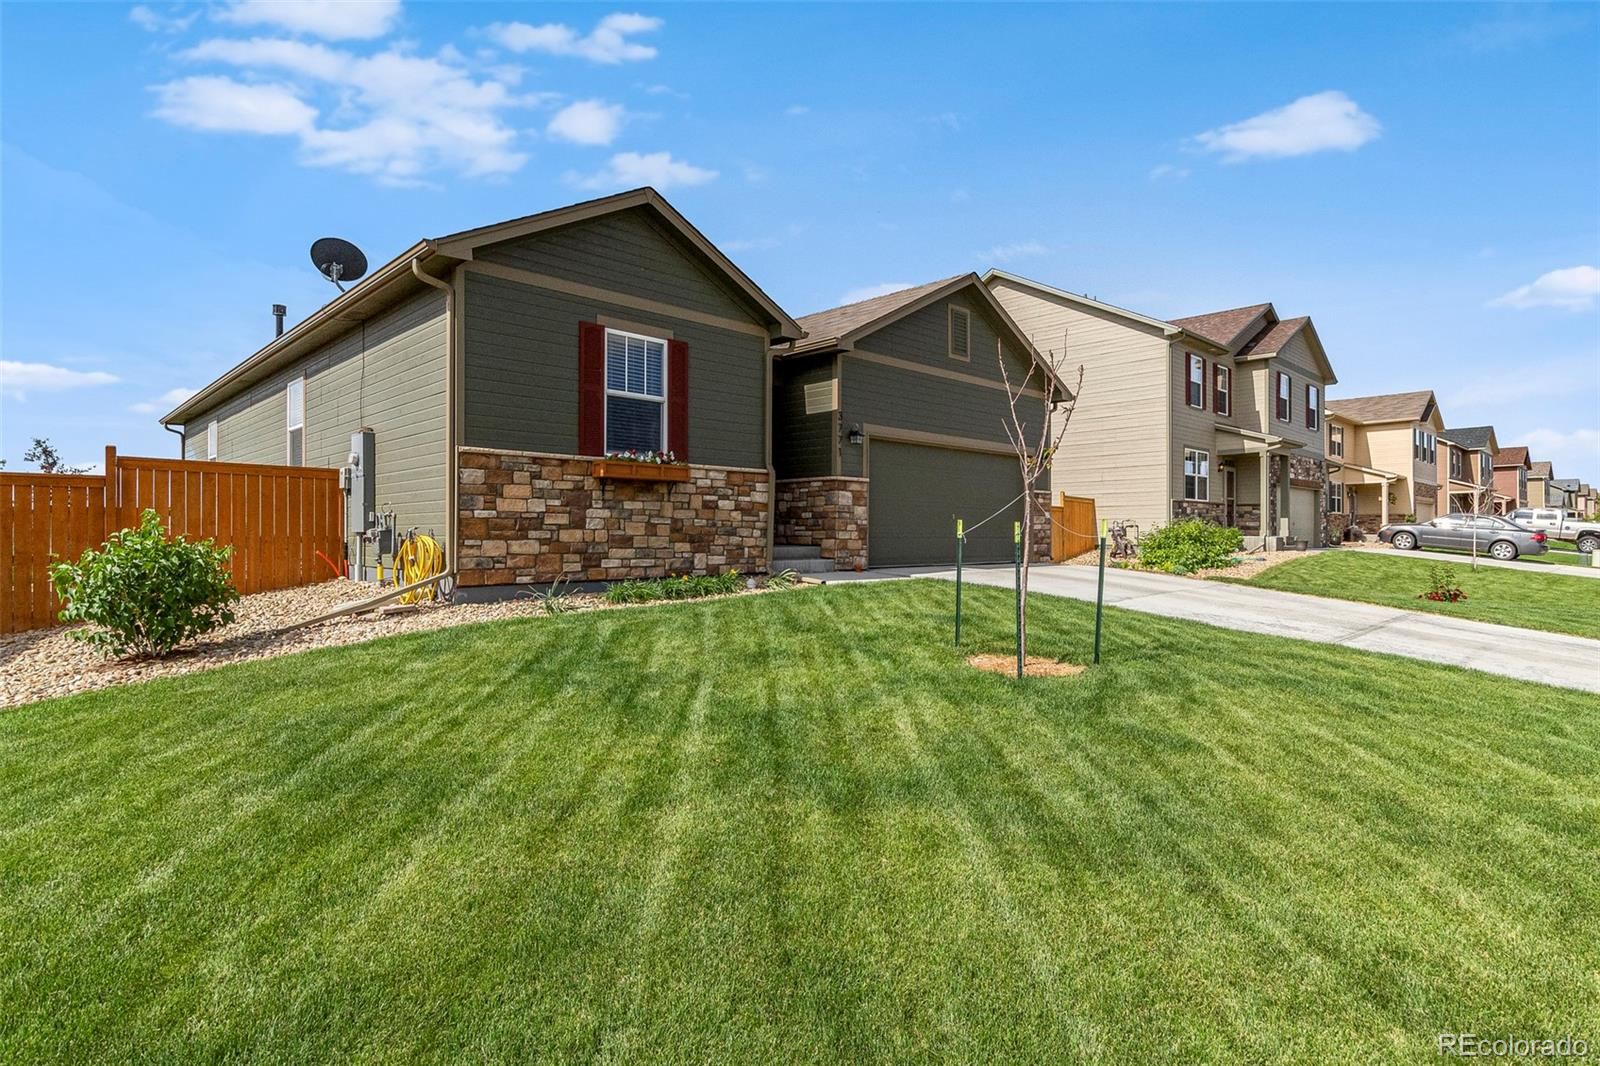 MLS# 2622320 - 1 - 3771 Torch Lily Street, Wellington, CO 80549